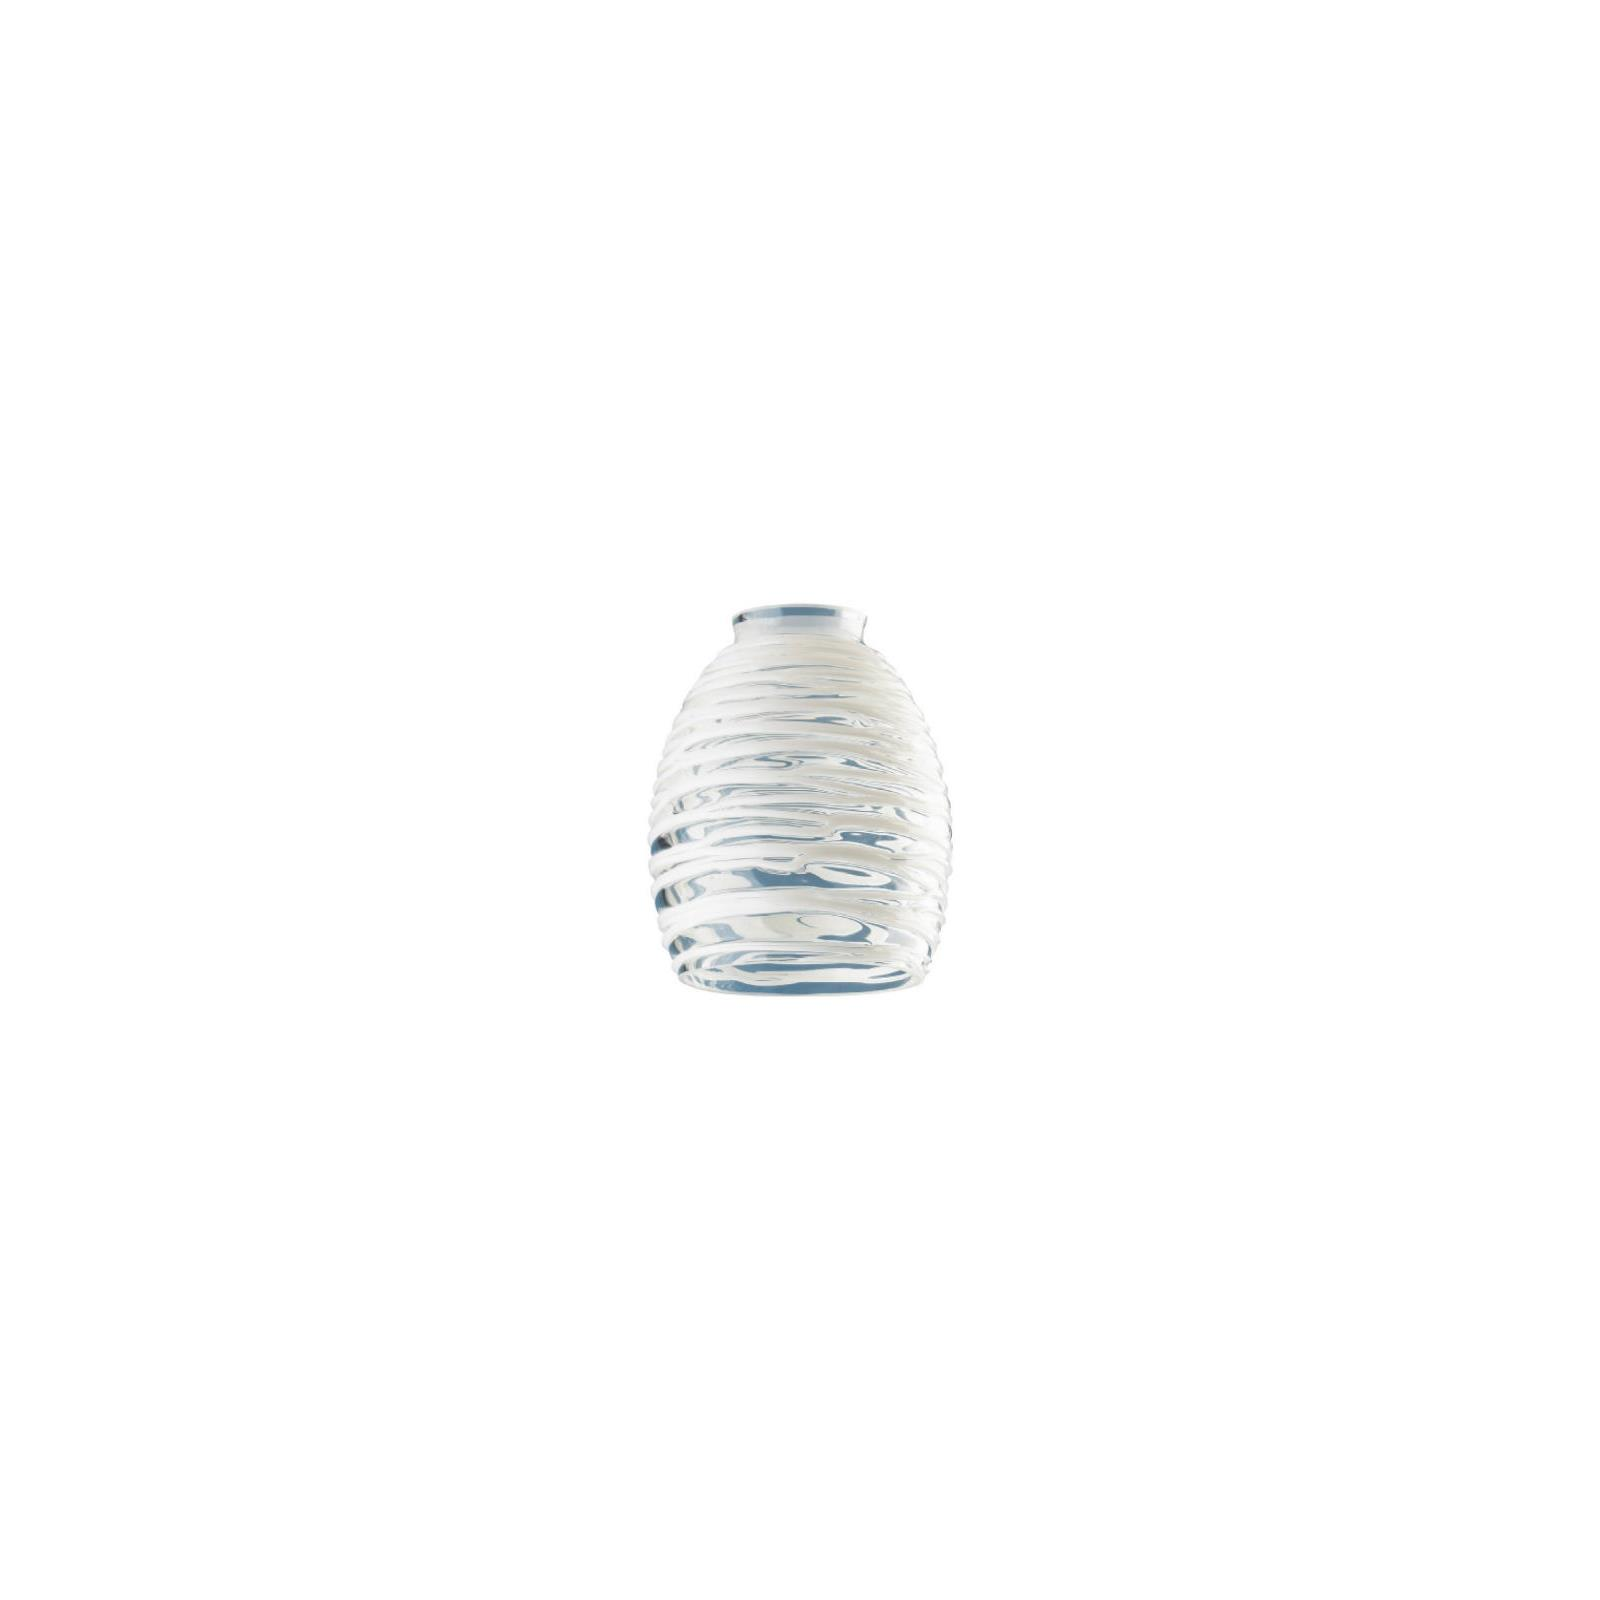 81314-Rope-Design-Glass-Ceiling-Fan-Light-Shades-Quantity-4 thumbnail 2